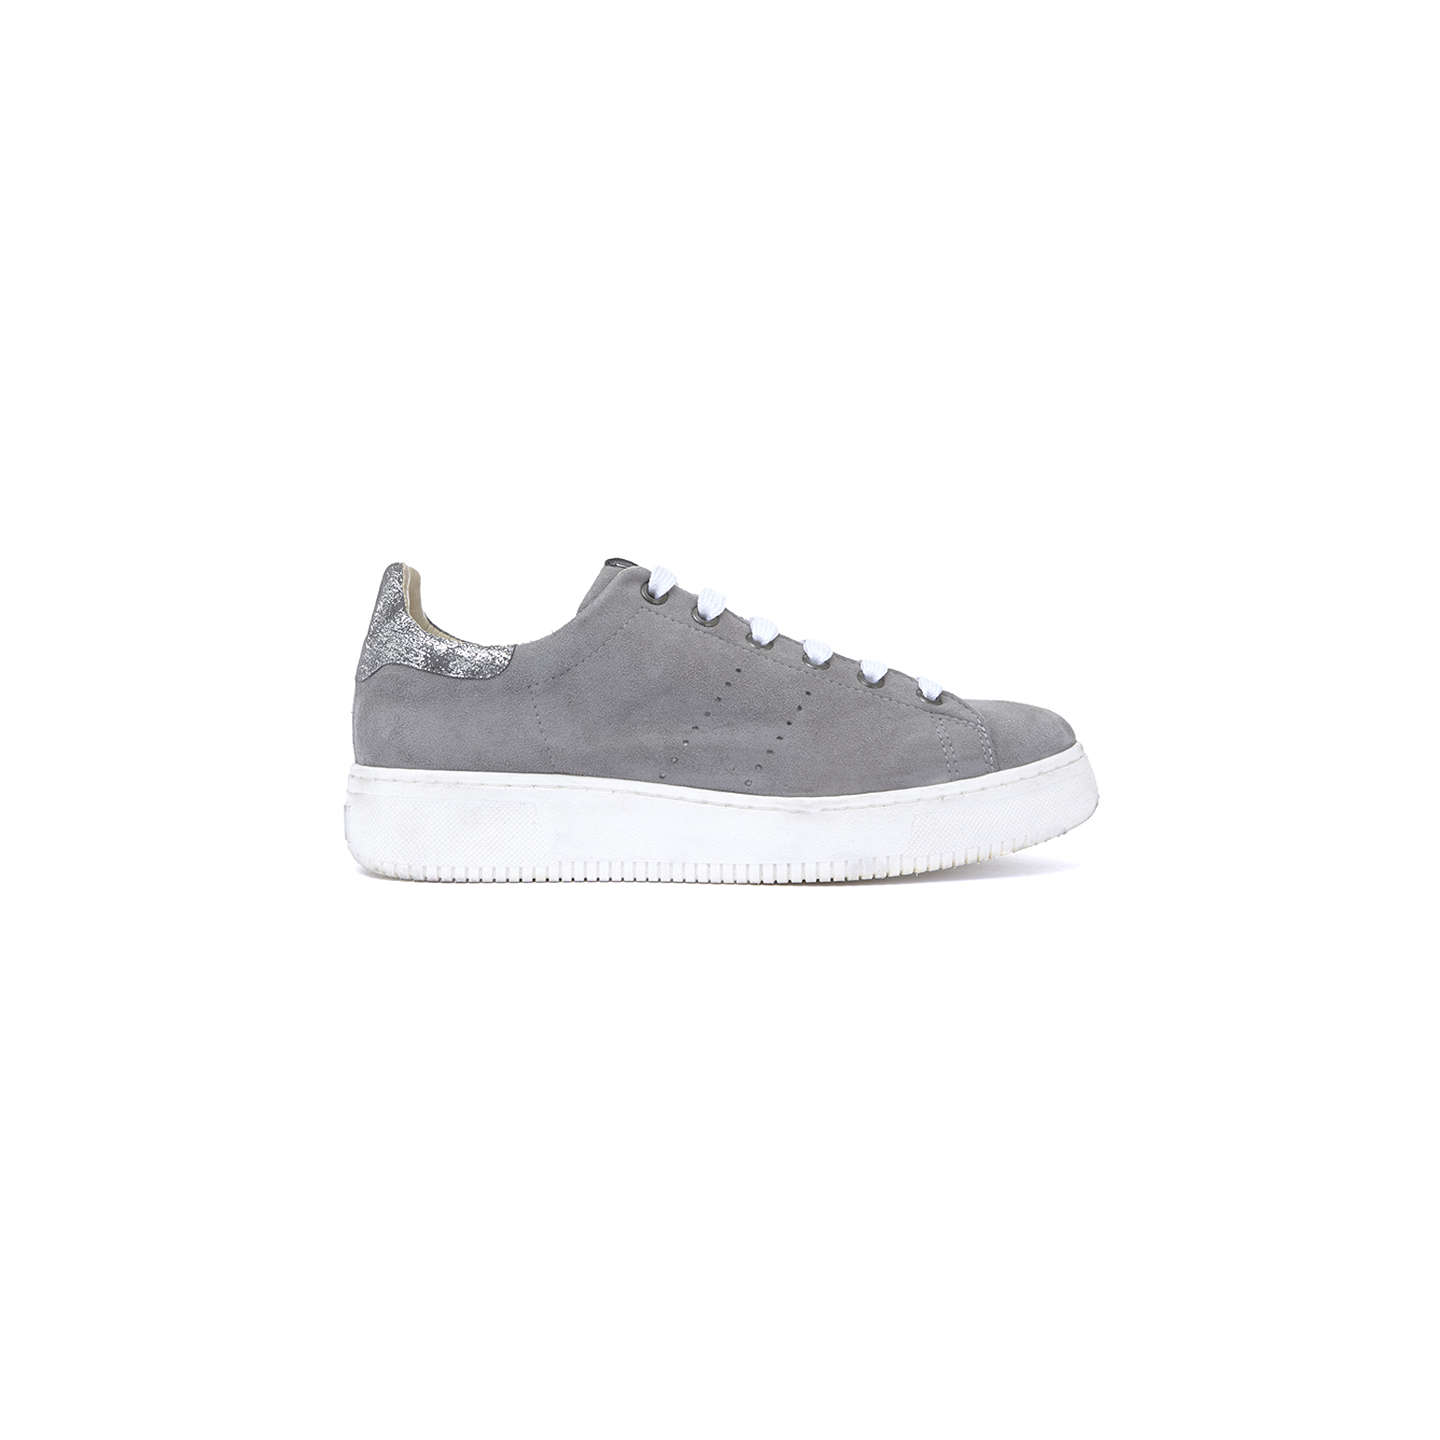 The Cheapest Best Price LACED UP - Trainers - grey Cheap Sale Affordable XJEN02sX1C